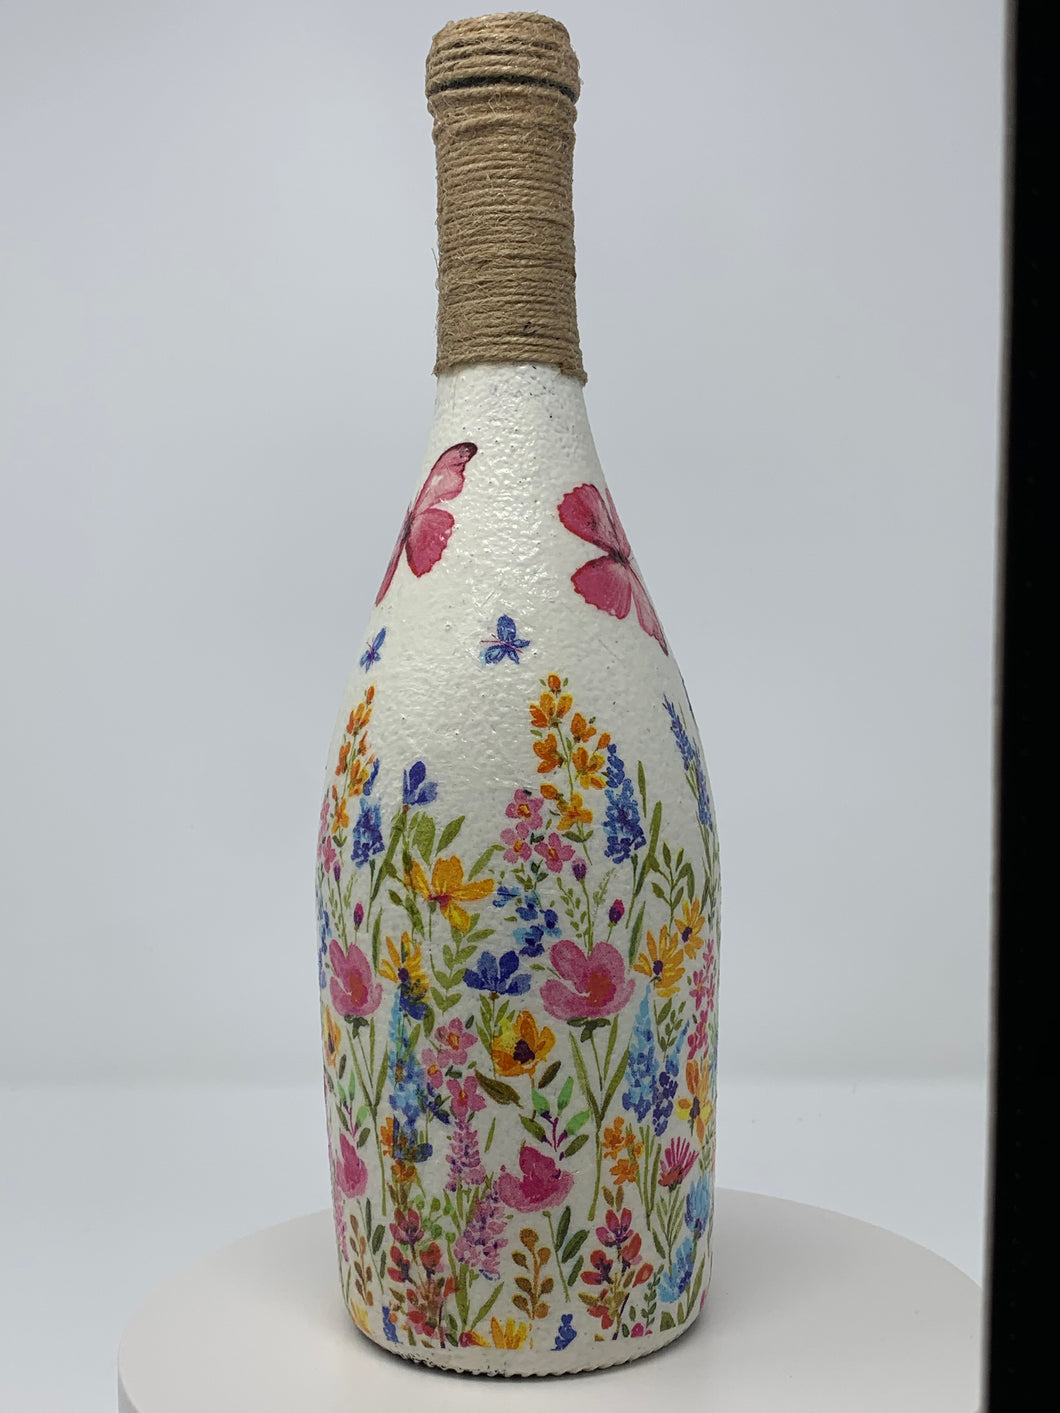 Decorative bottle - Butterfly & flowers scene